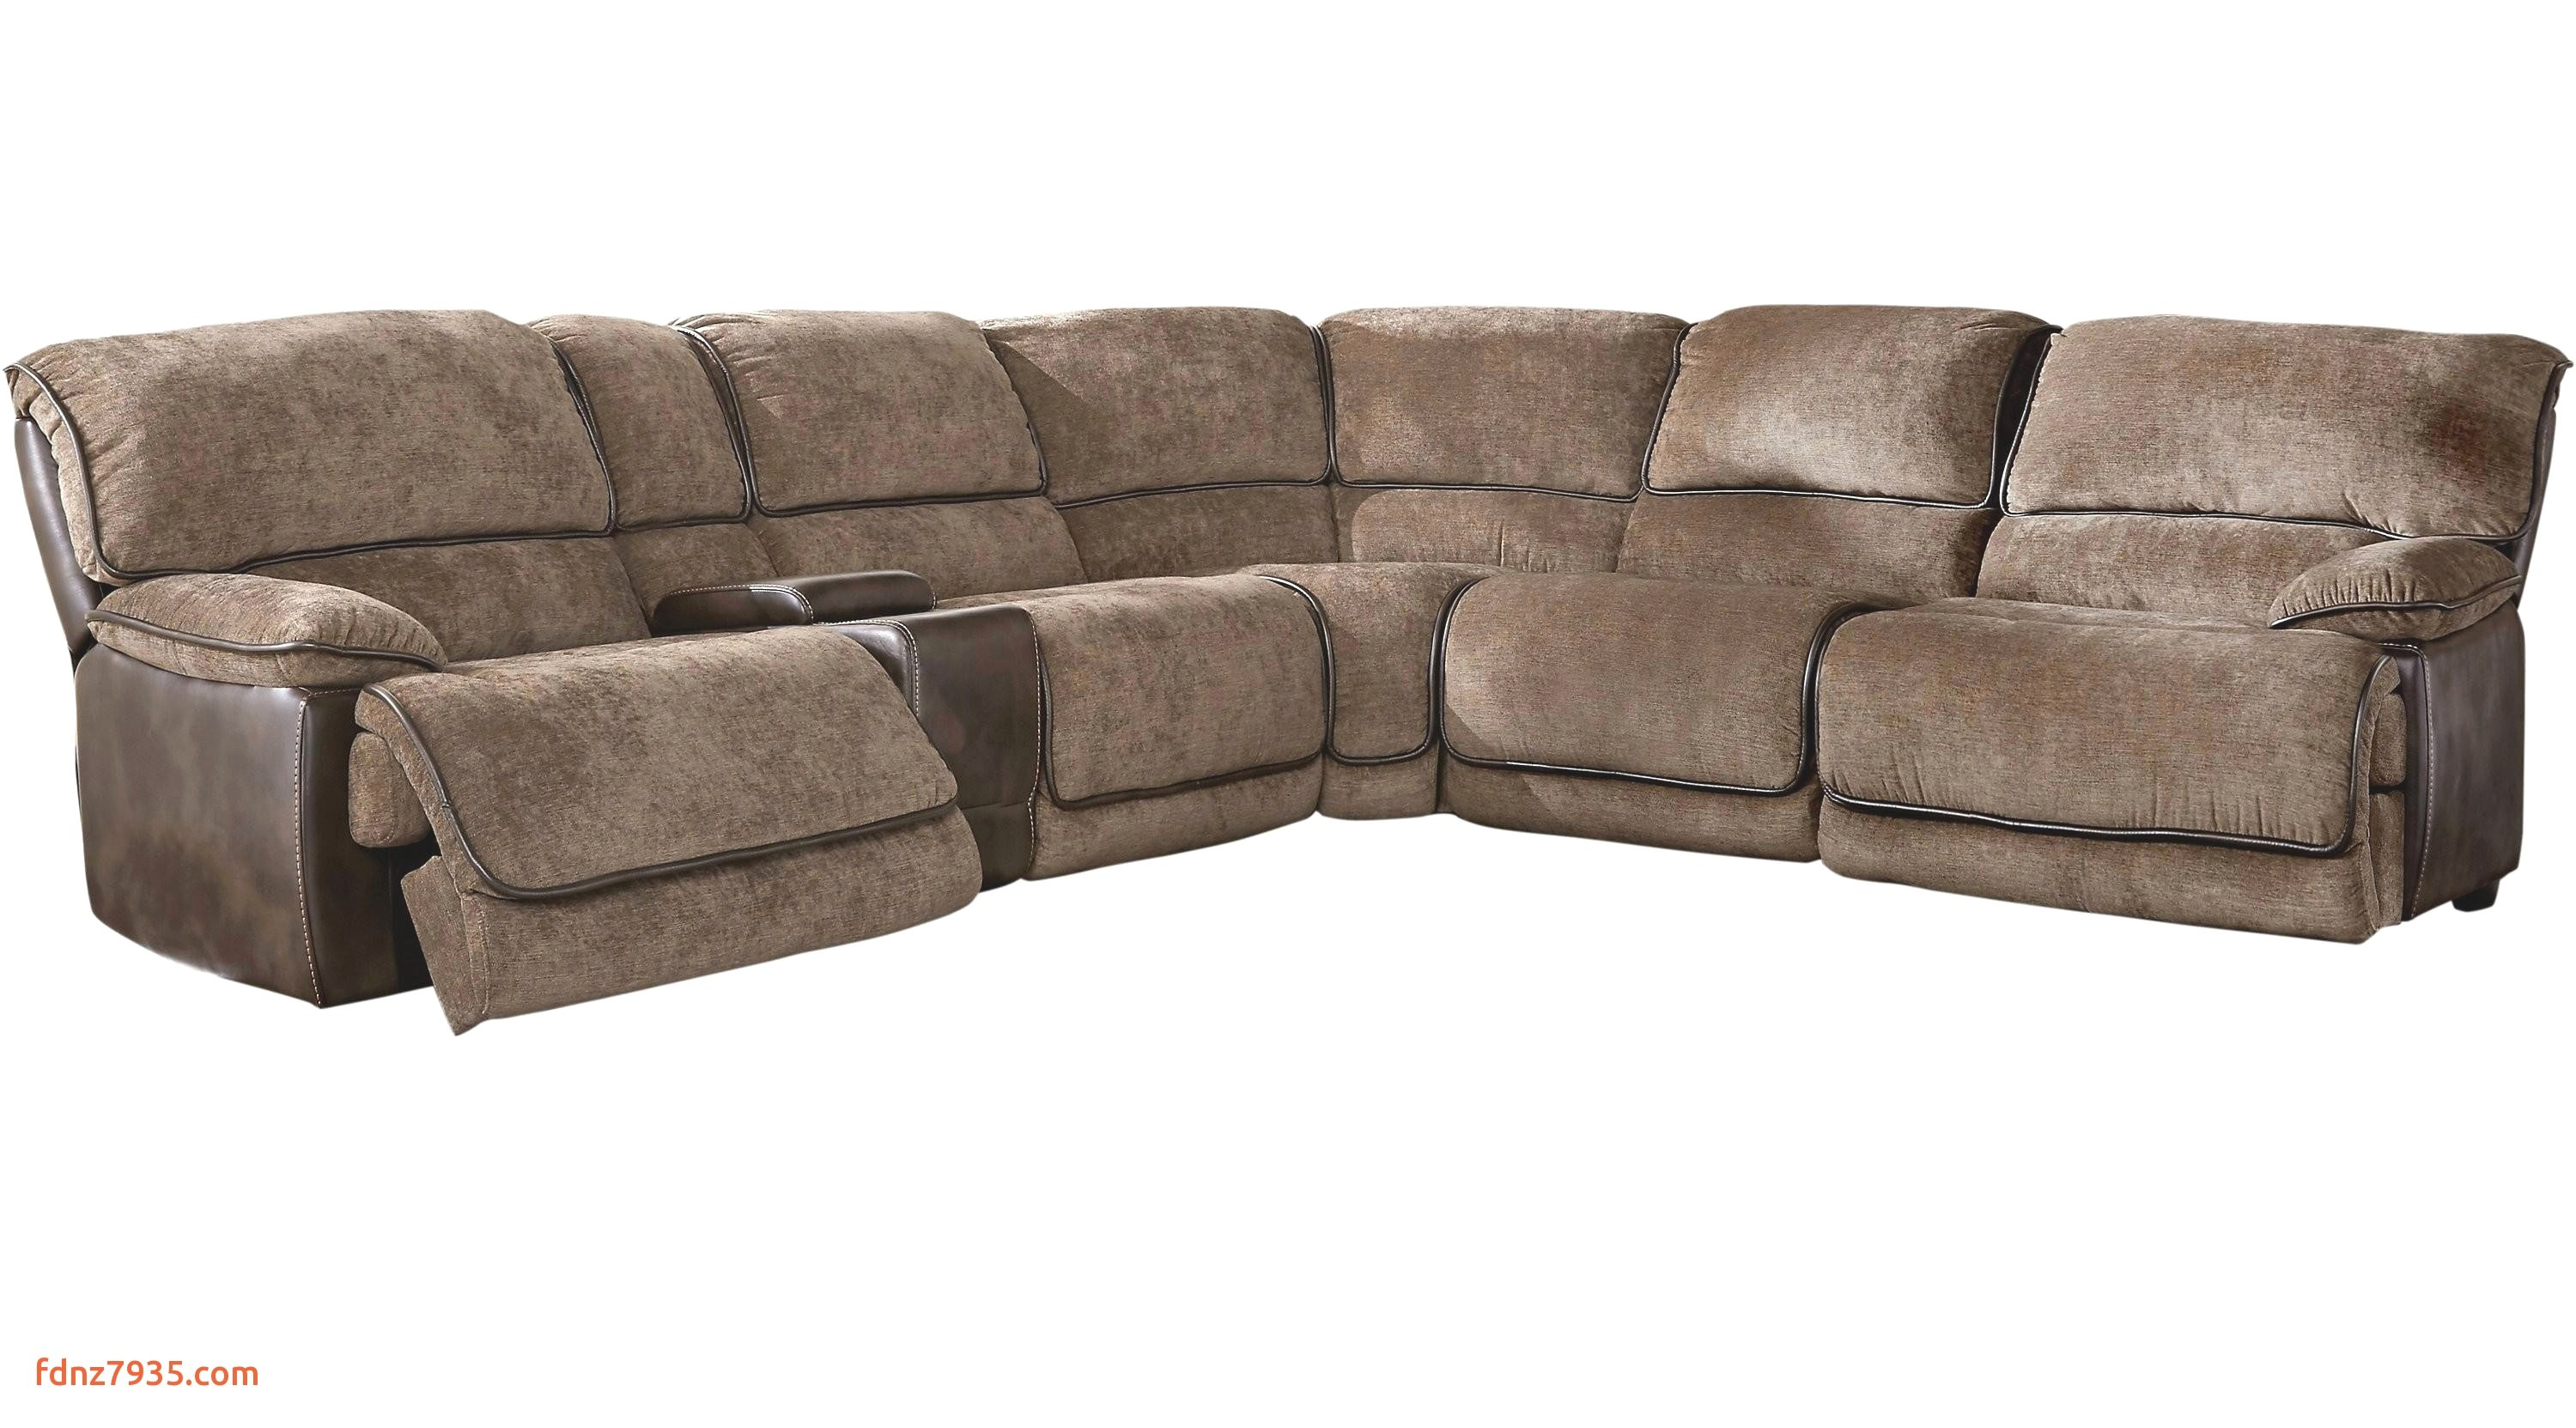 costco sectional couches unique slipcover sectional sofa luxury couch cover new sectional couch 0d